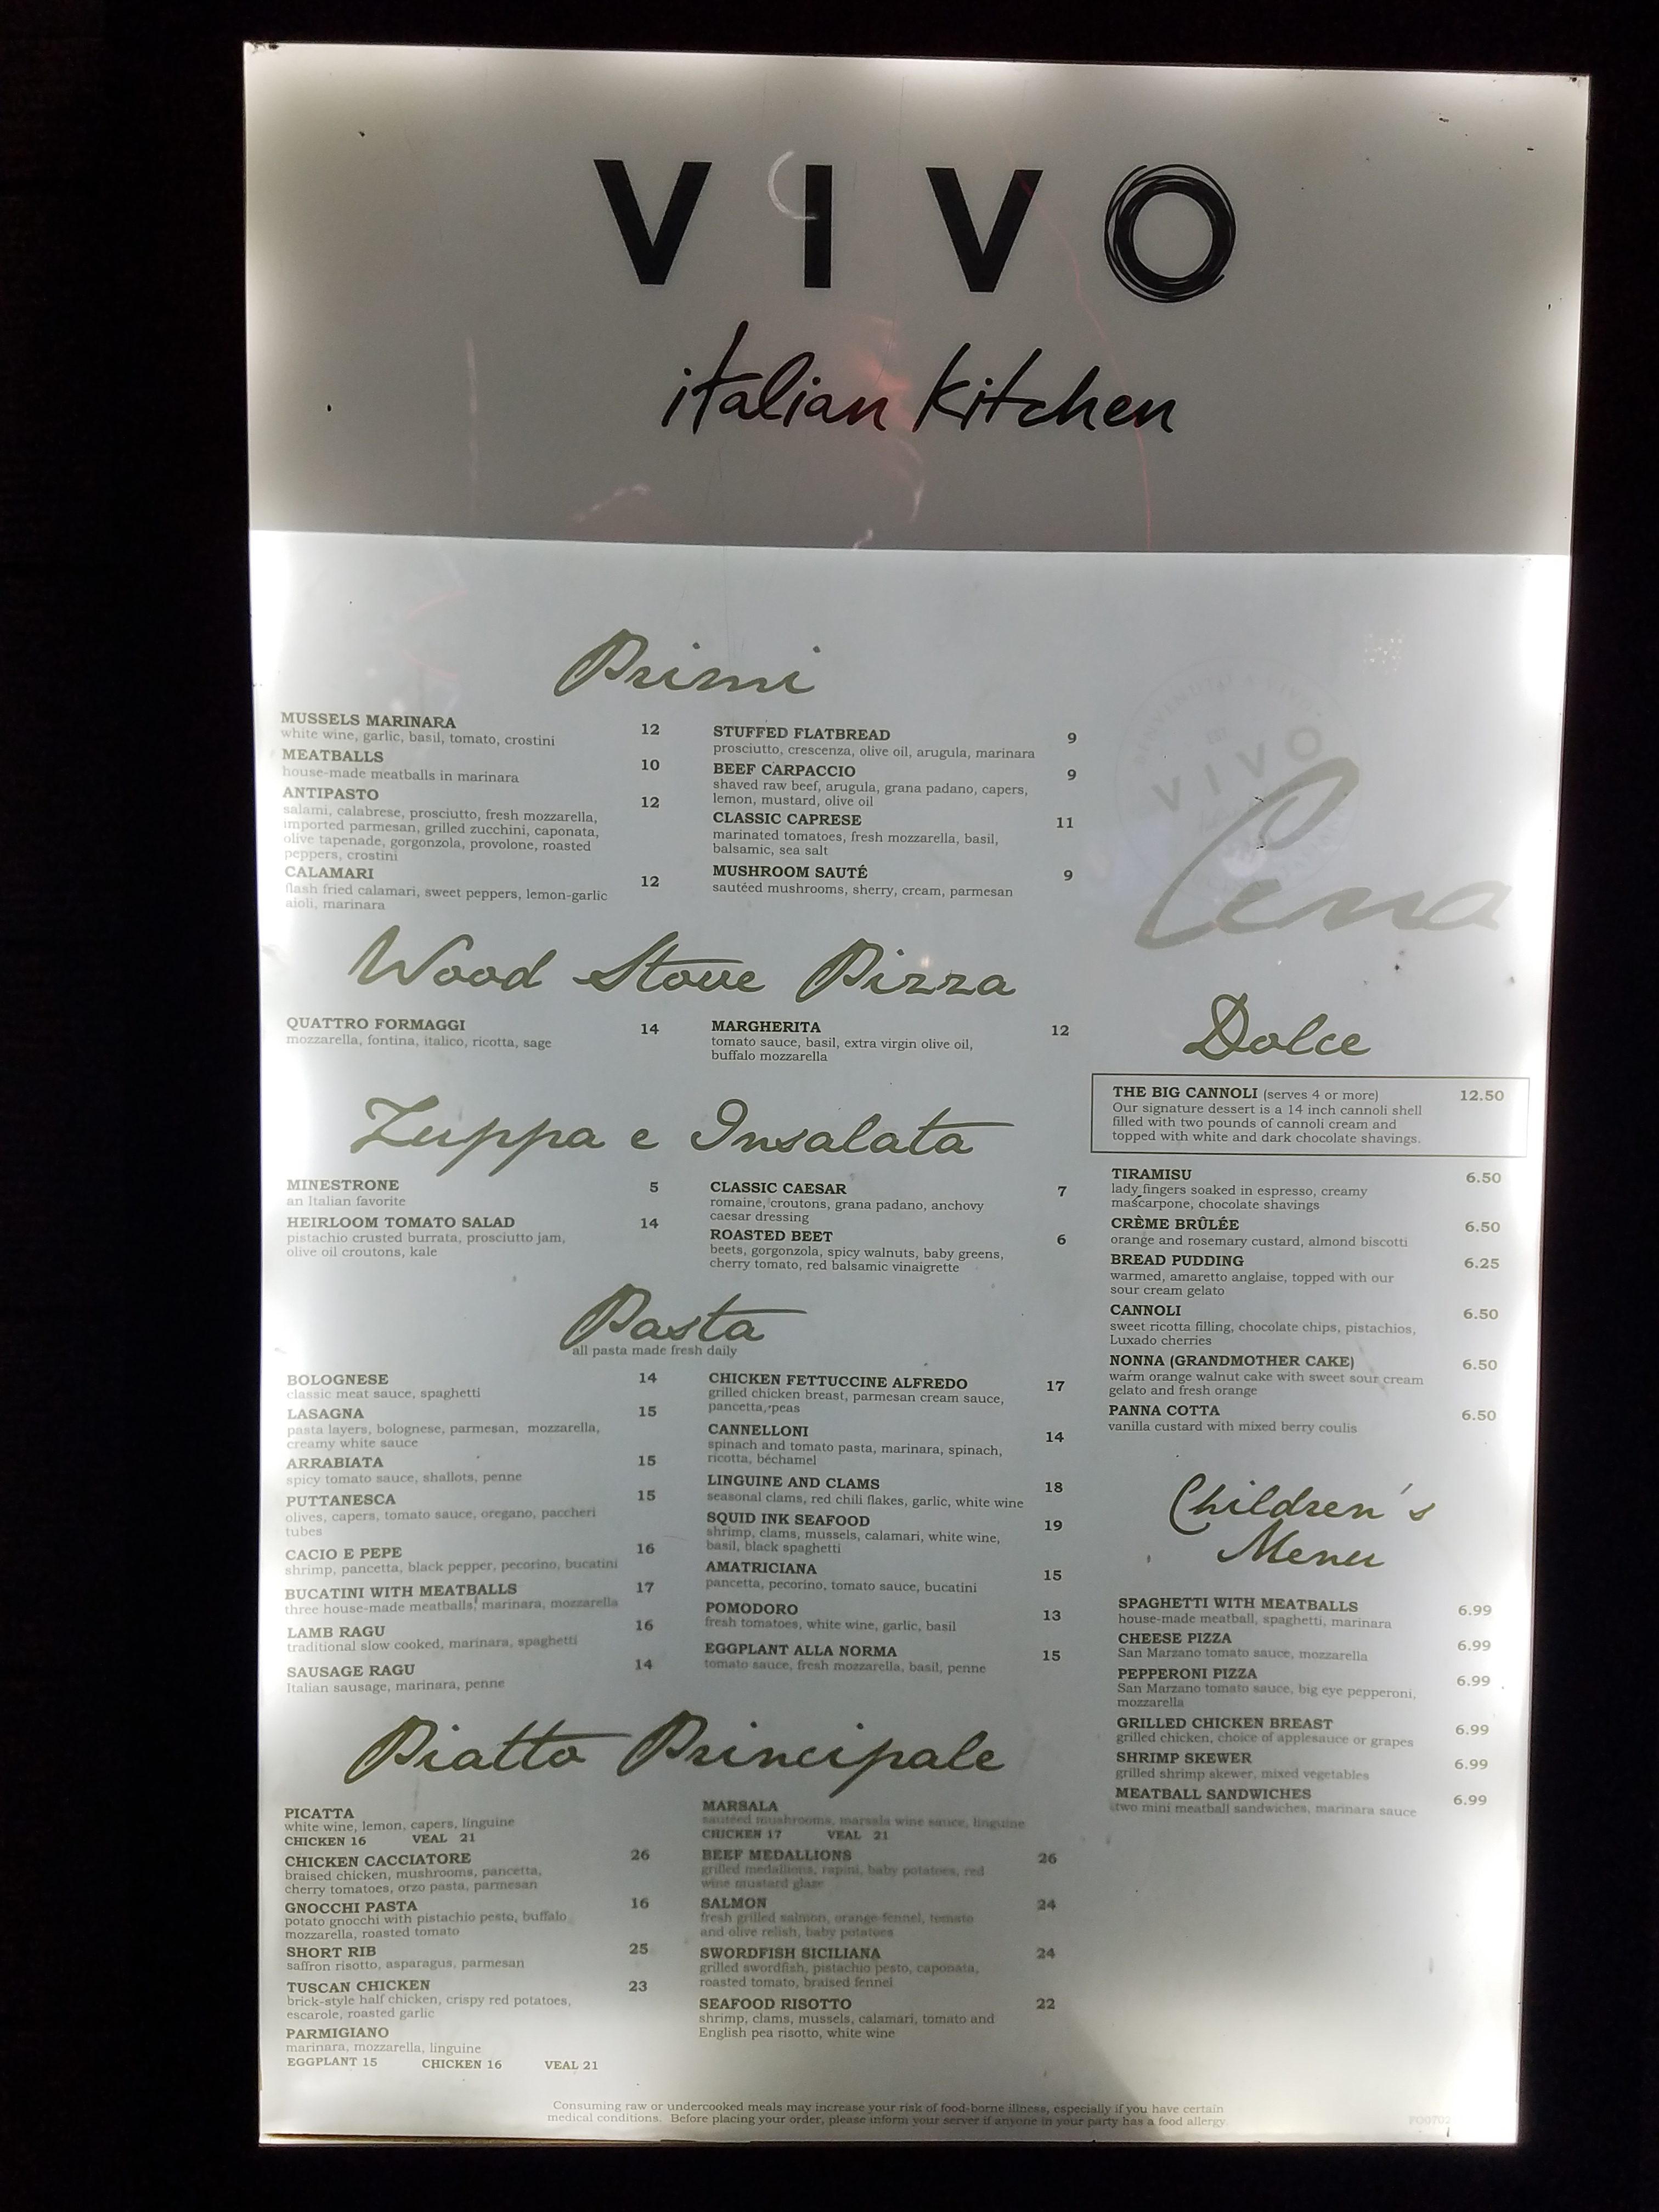 Dining Review Of Vivo Italian Kitchen In Citywalk